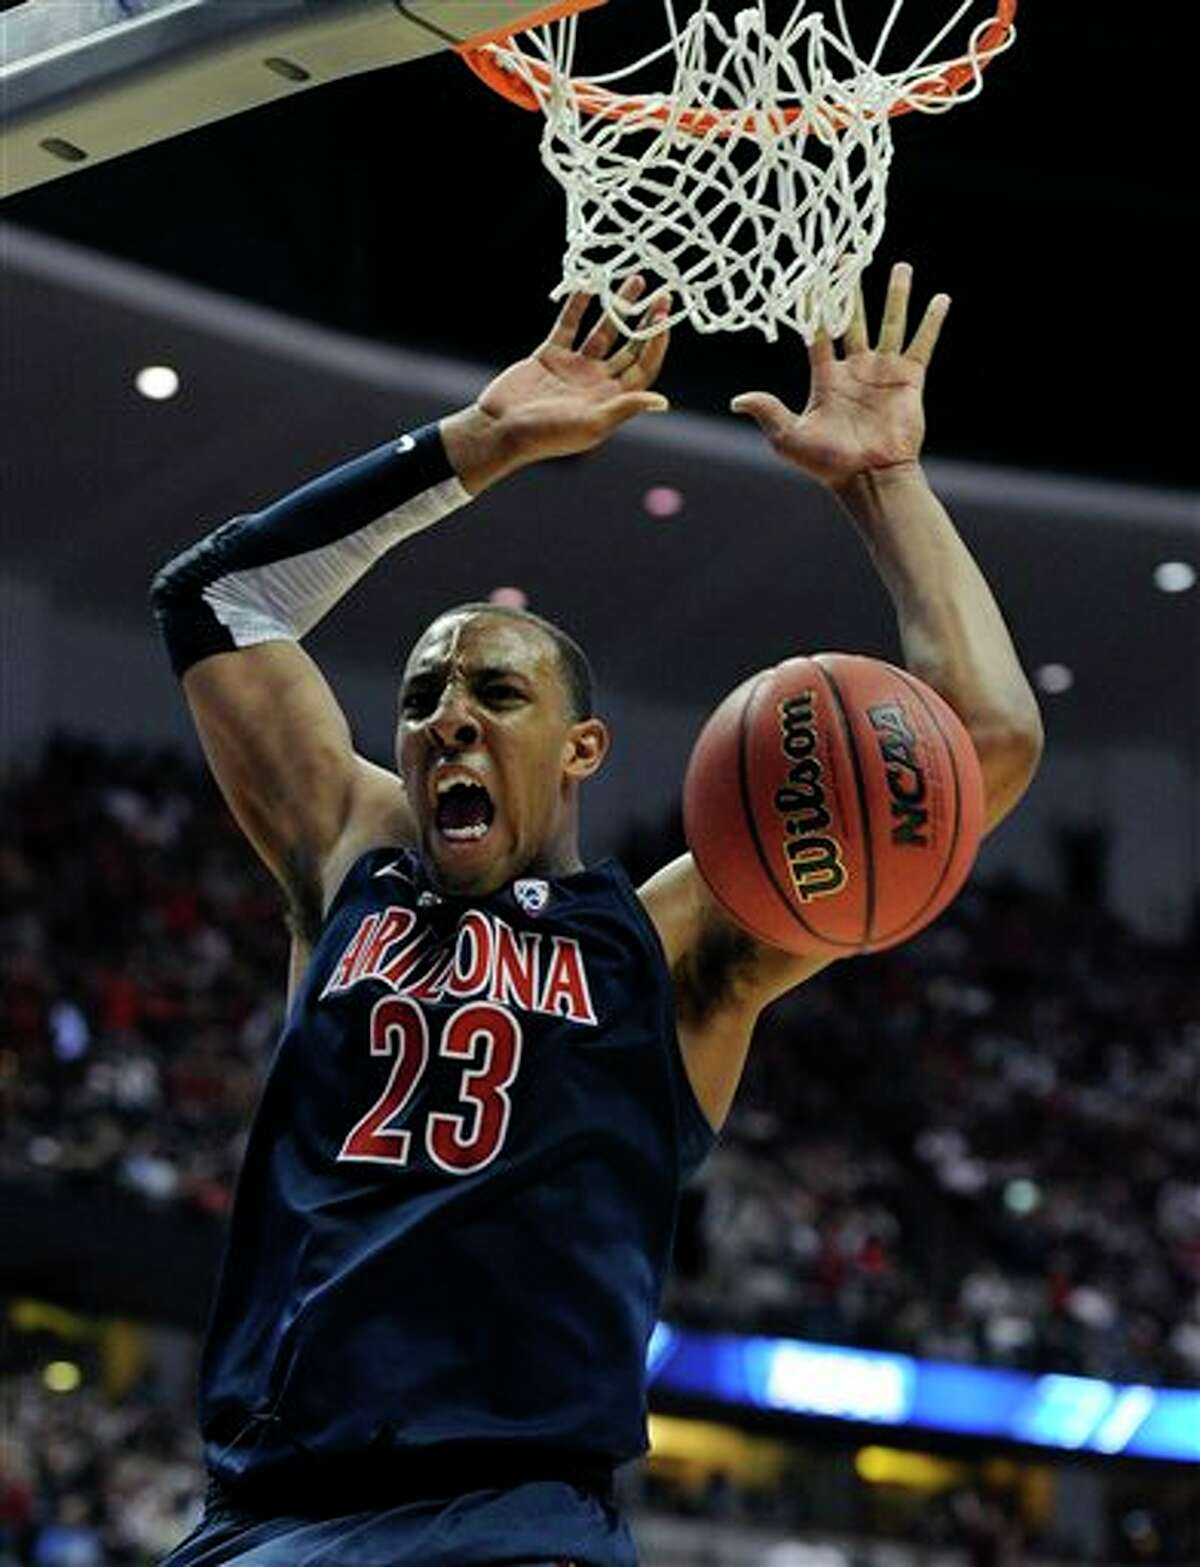 Arizona's Derrick Williams dunking during the second half of an NCAA West regional college basketball championship game, in Anaheim, Calif. Williams is a top prospect in the 2011 NBA draft. (AP Photo/Mark J. Terrill)